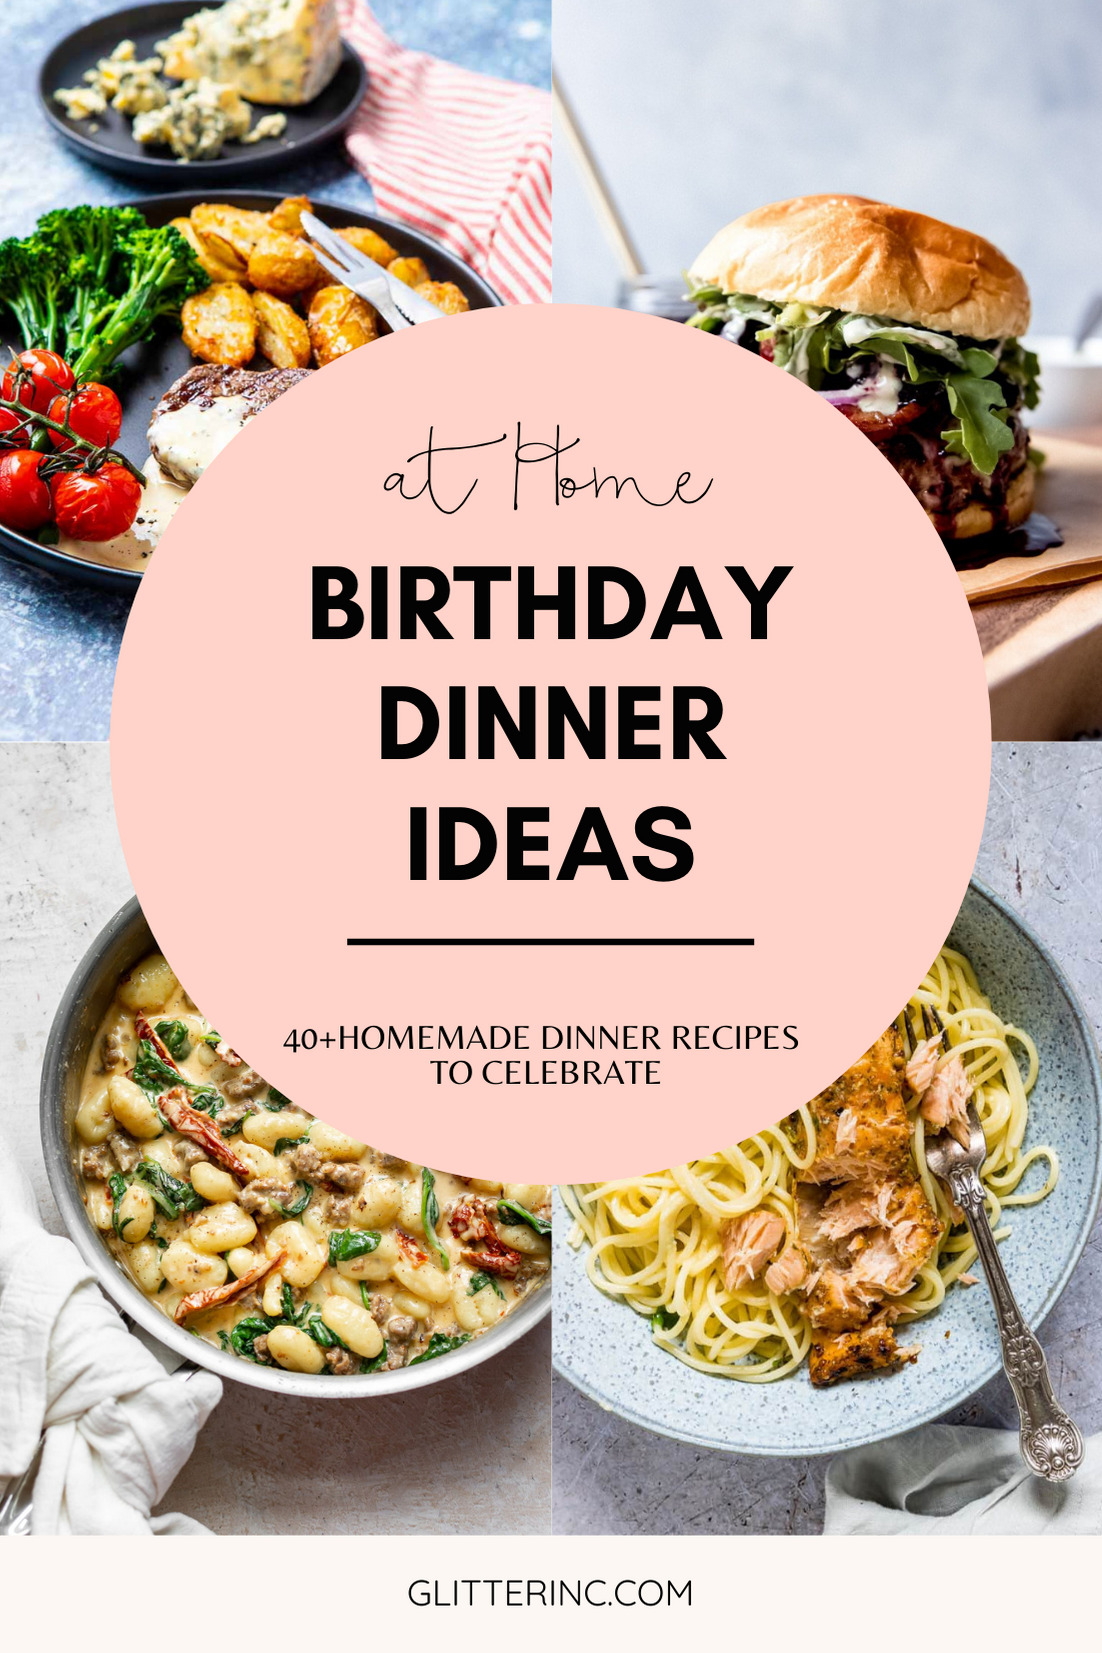 What better way to celebrate a big birthday than with a delicious, home cooked meal? Click through for 40 delicious birthday dinner recipe ideas to celebrate that special someone at home. | glitterinc.com | @glitterinc